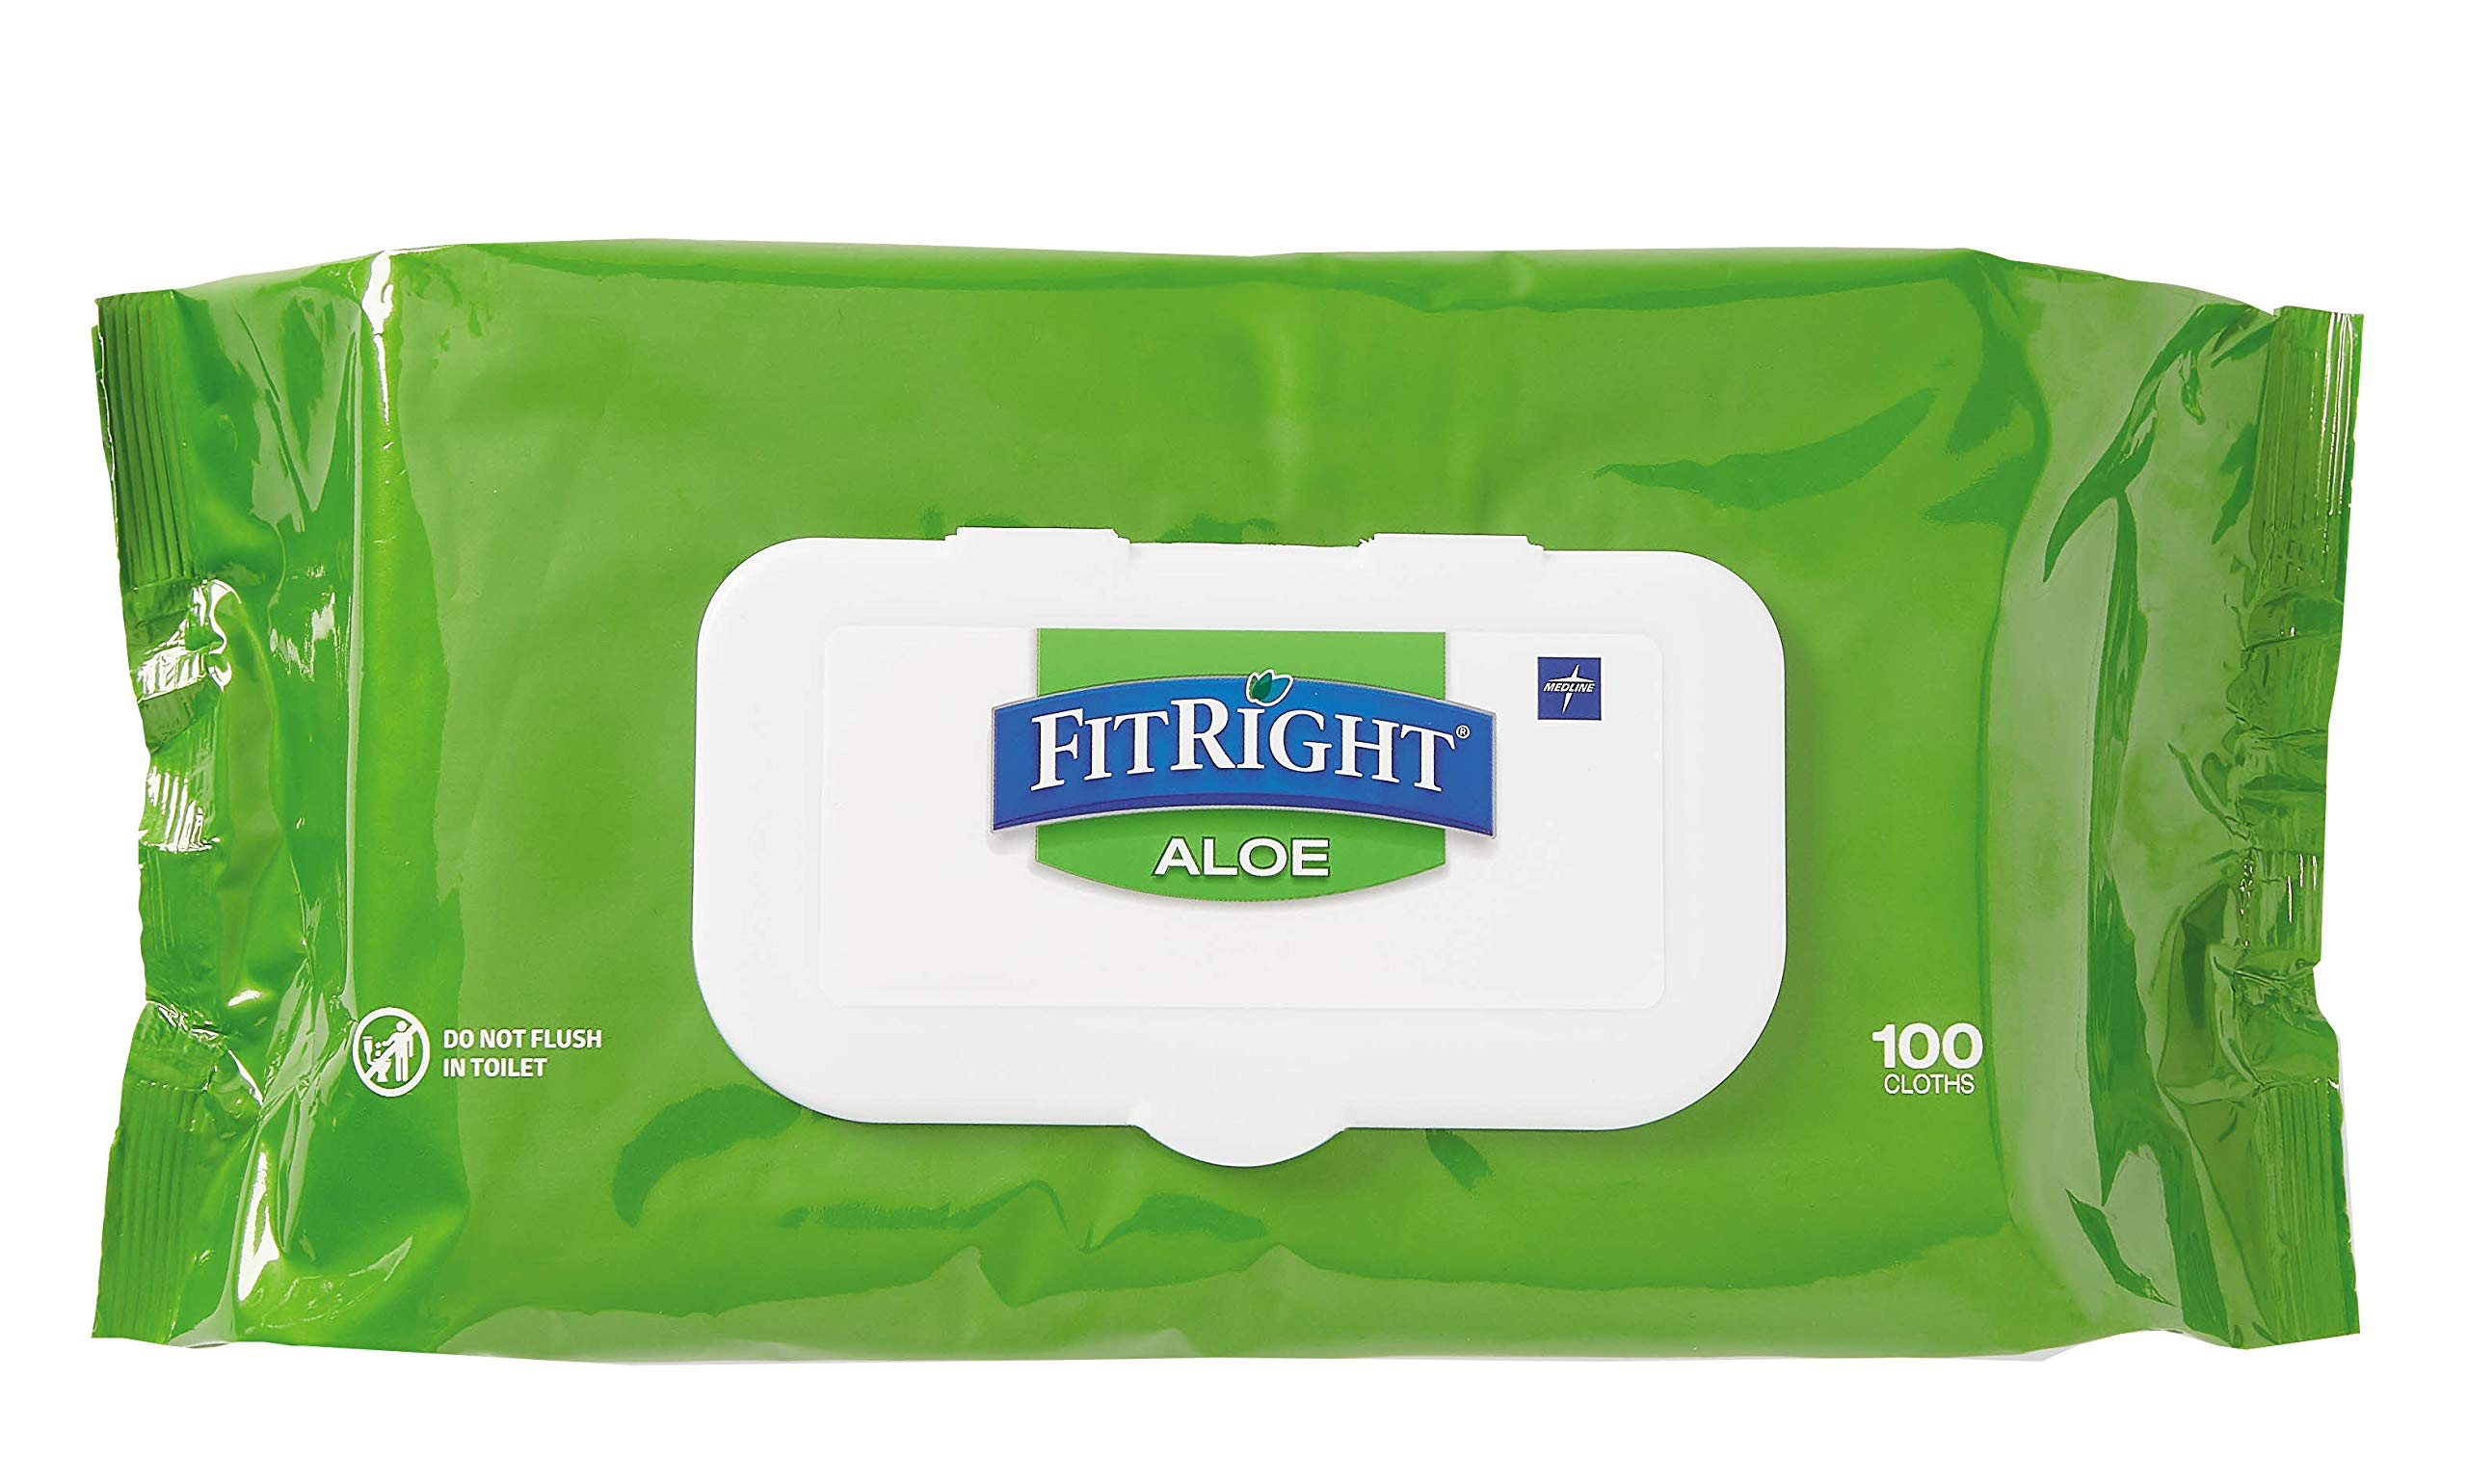 FitRight Aloe Personal Cleansing Cloth Wipes, Unscented, 600 Count, 8 x 12 inch Adult Large Incontinence Wipes by Medline